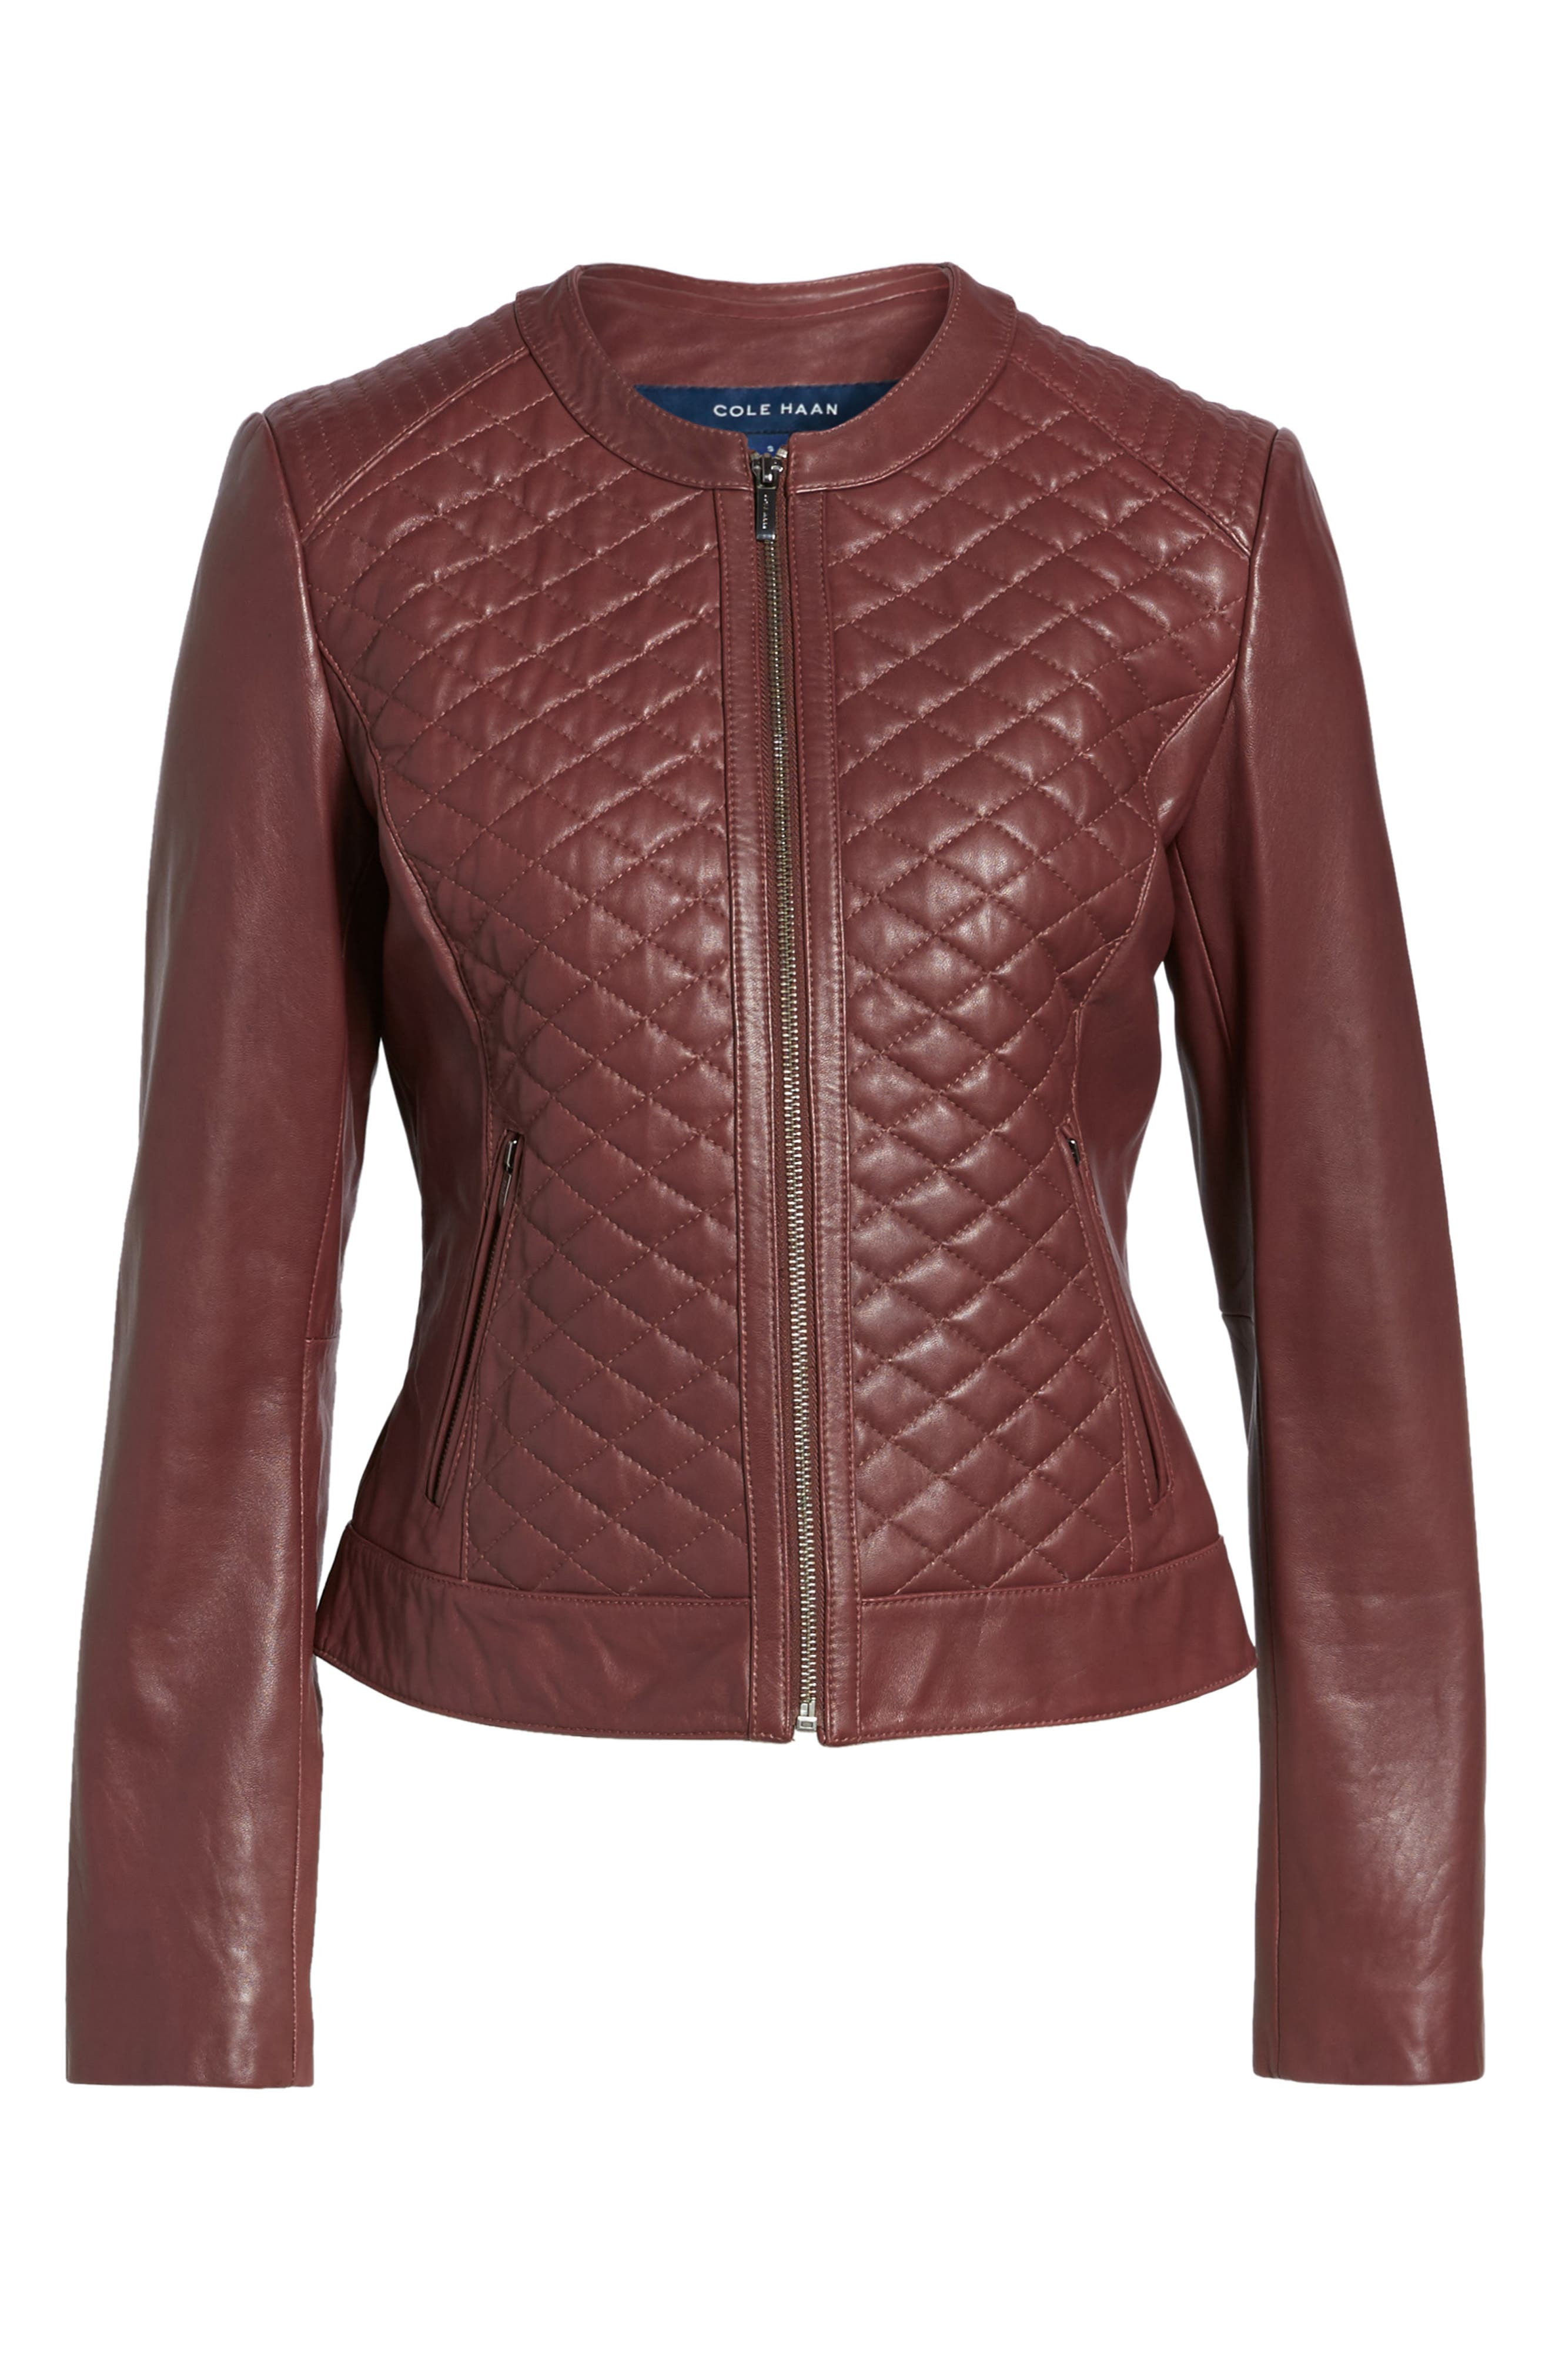 COLE HAAN,                             Quilted Leather Moto Jacket,                             Alternate thumbnail 5, color,                             602